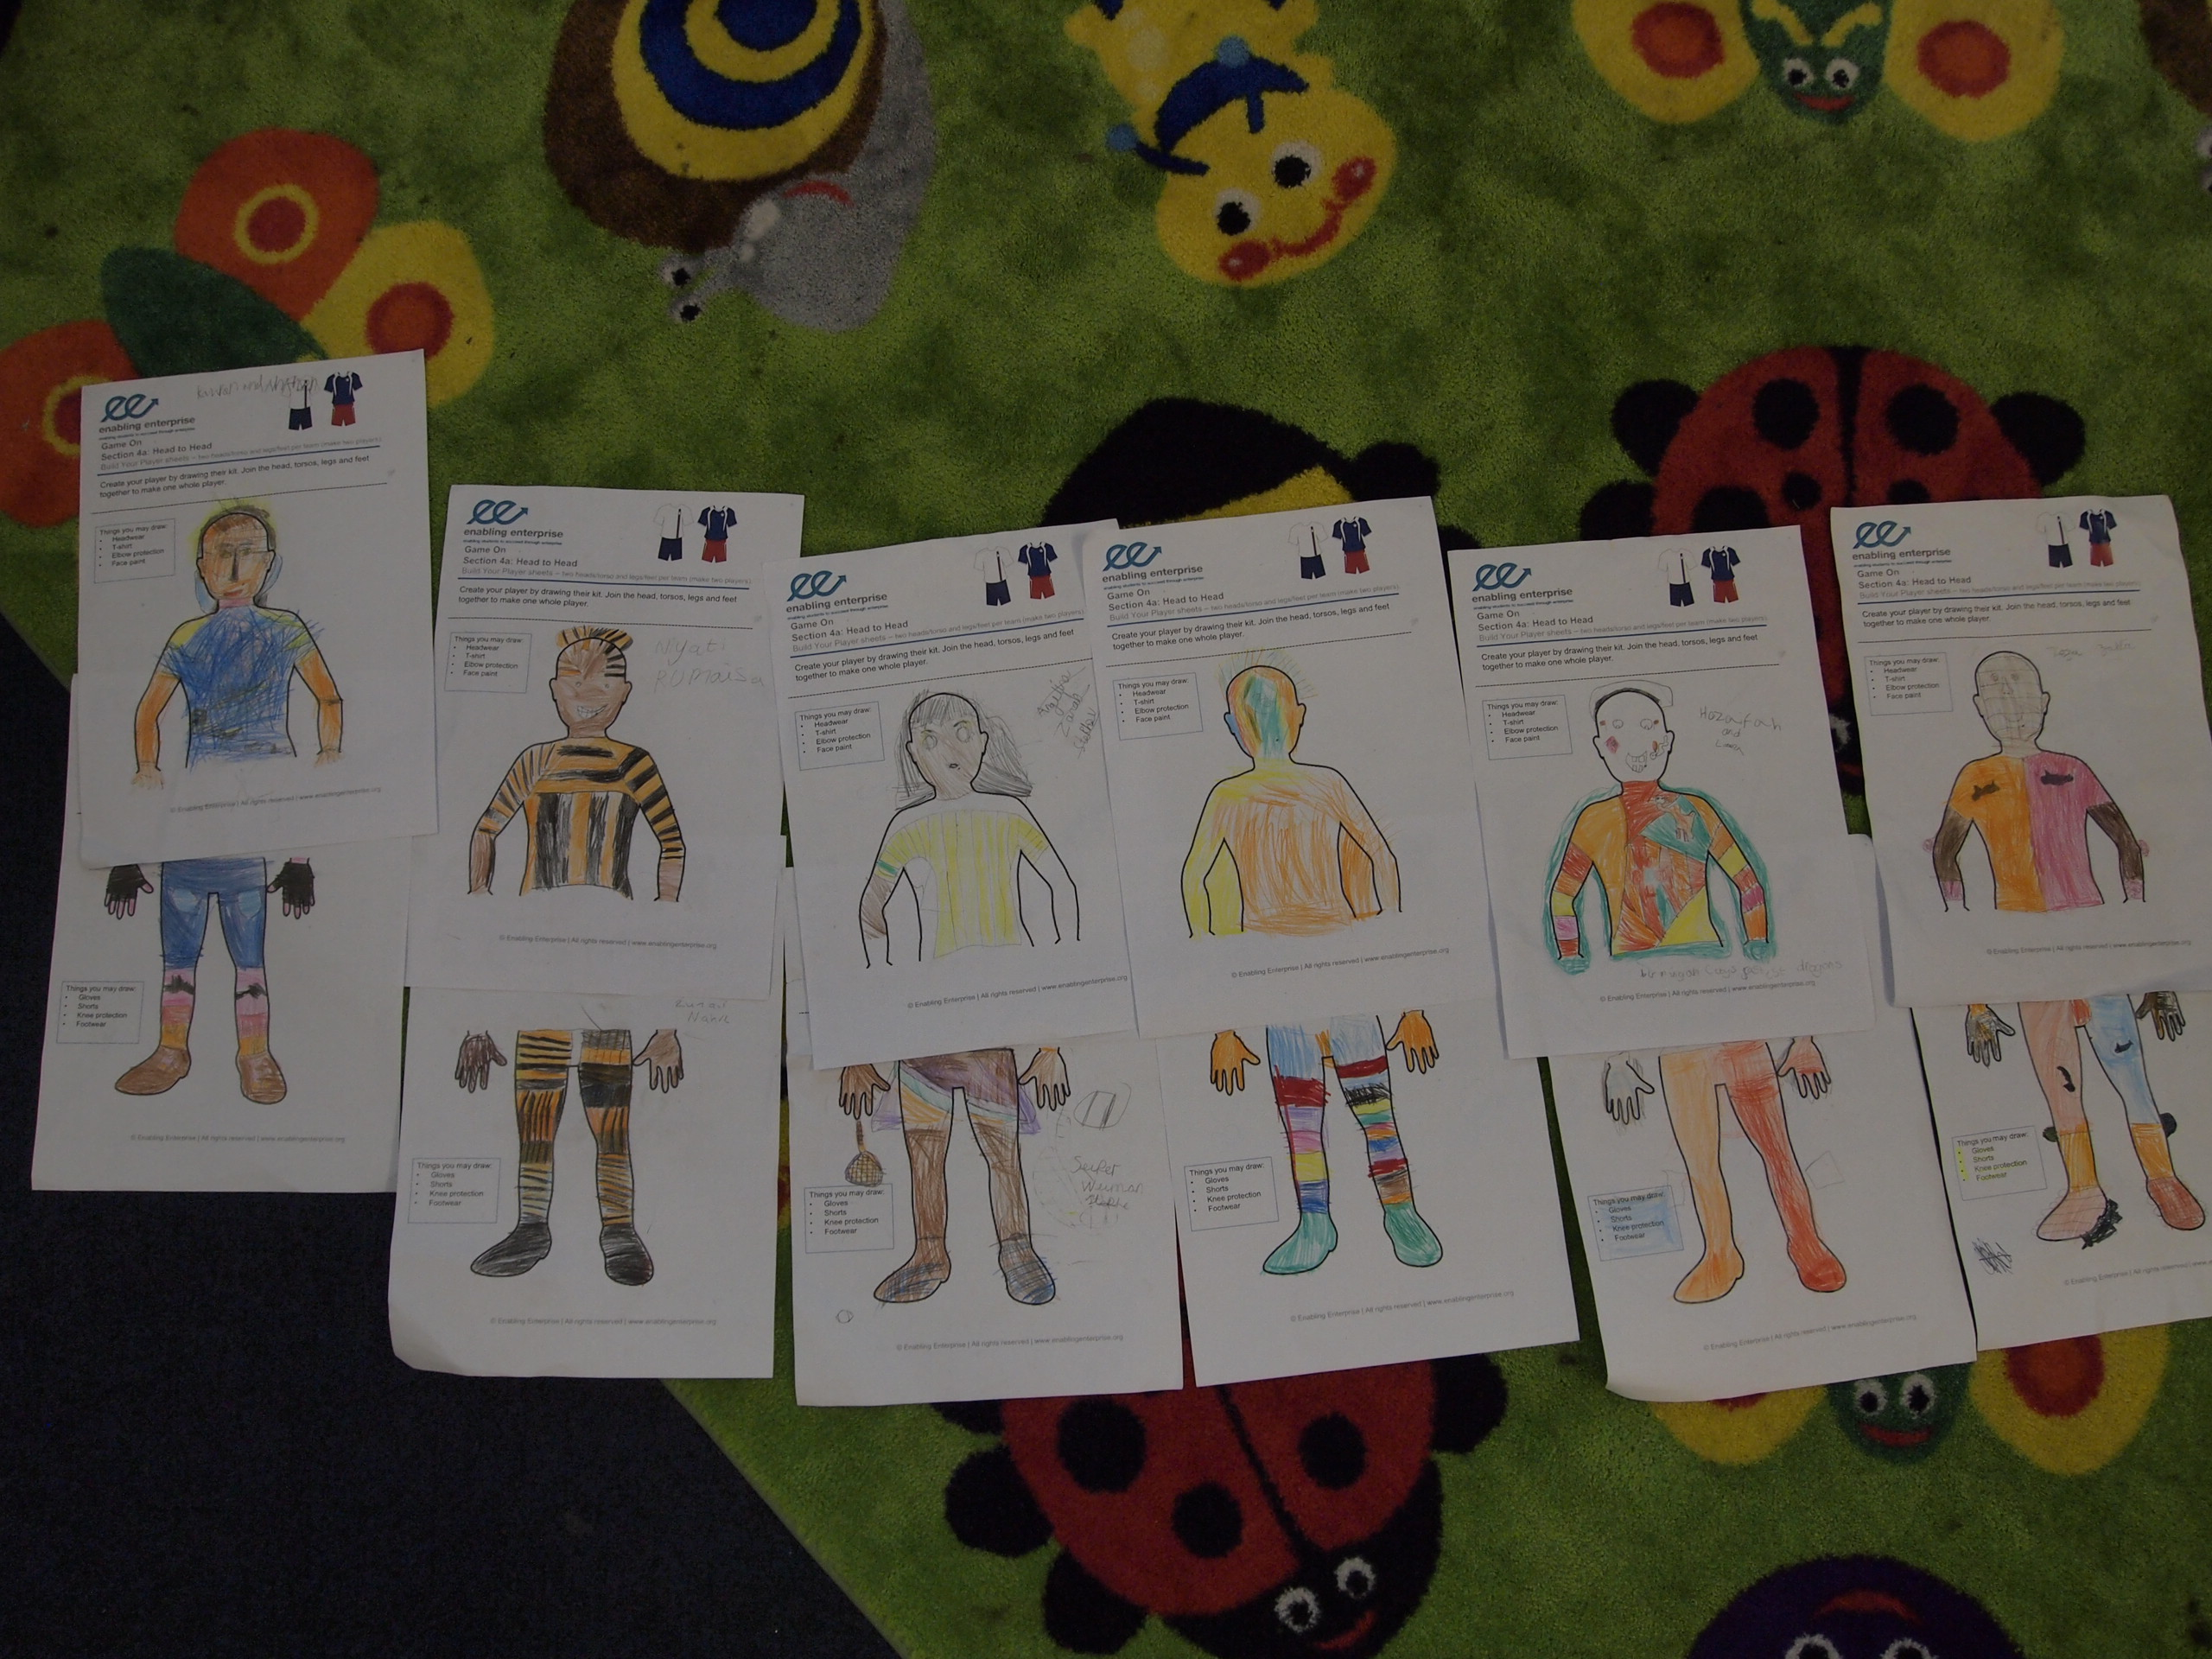 More Creativity at play as Year 2 designed an array of very colourful outfits!